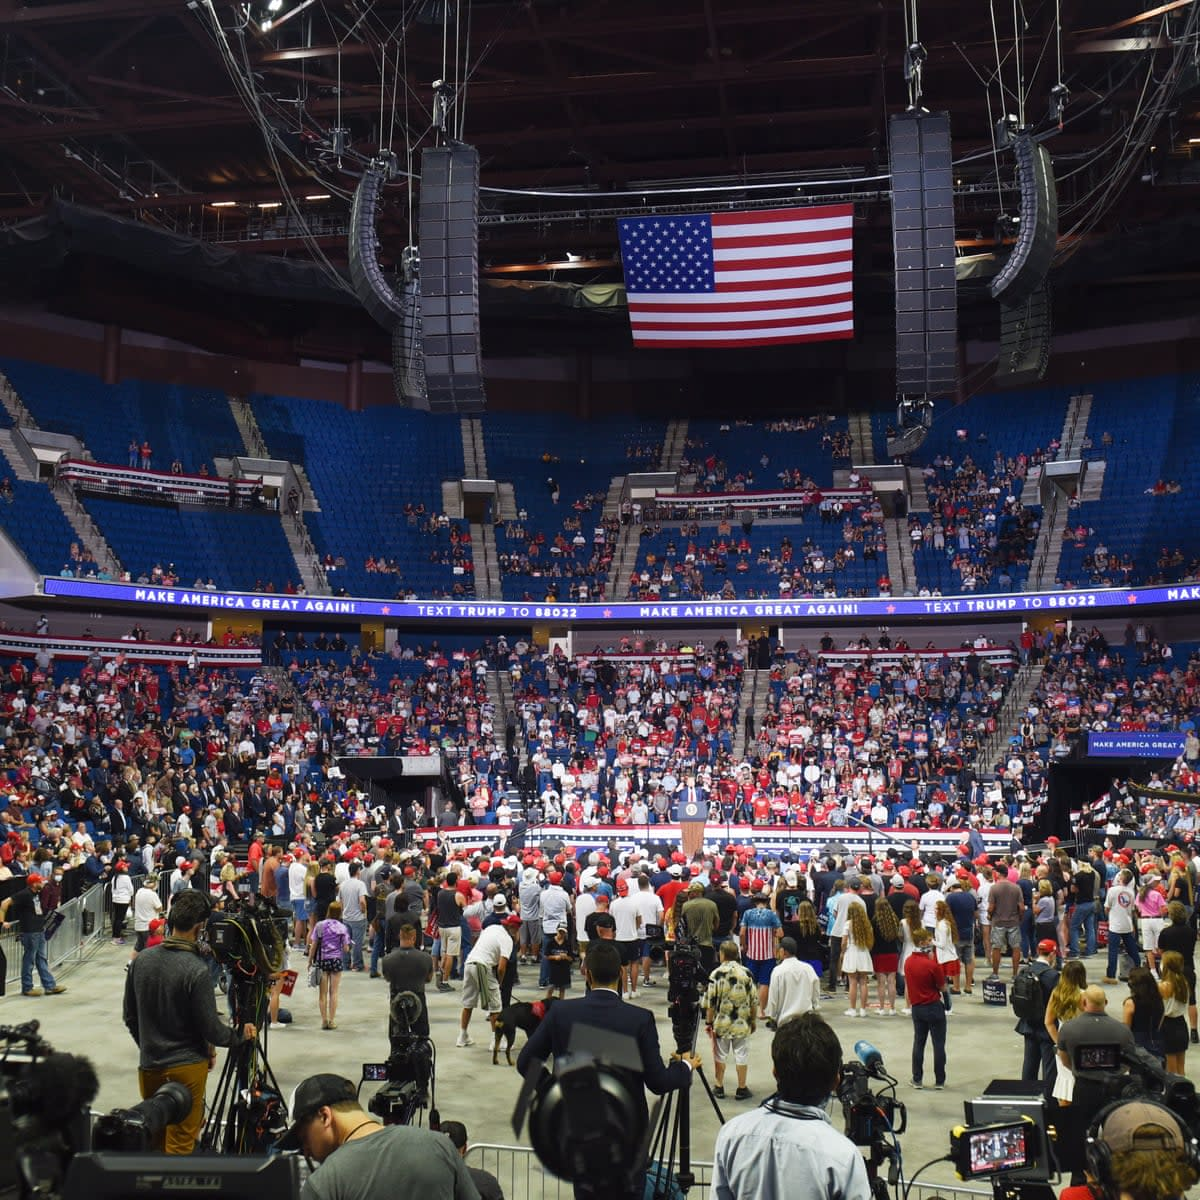 Us Election: A Biden Win Looks Likely, so What Went Wrong for the 45th President?